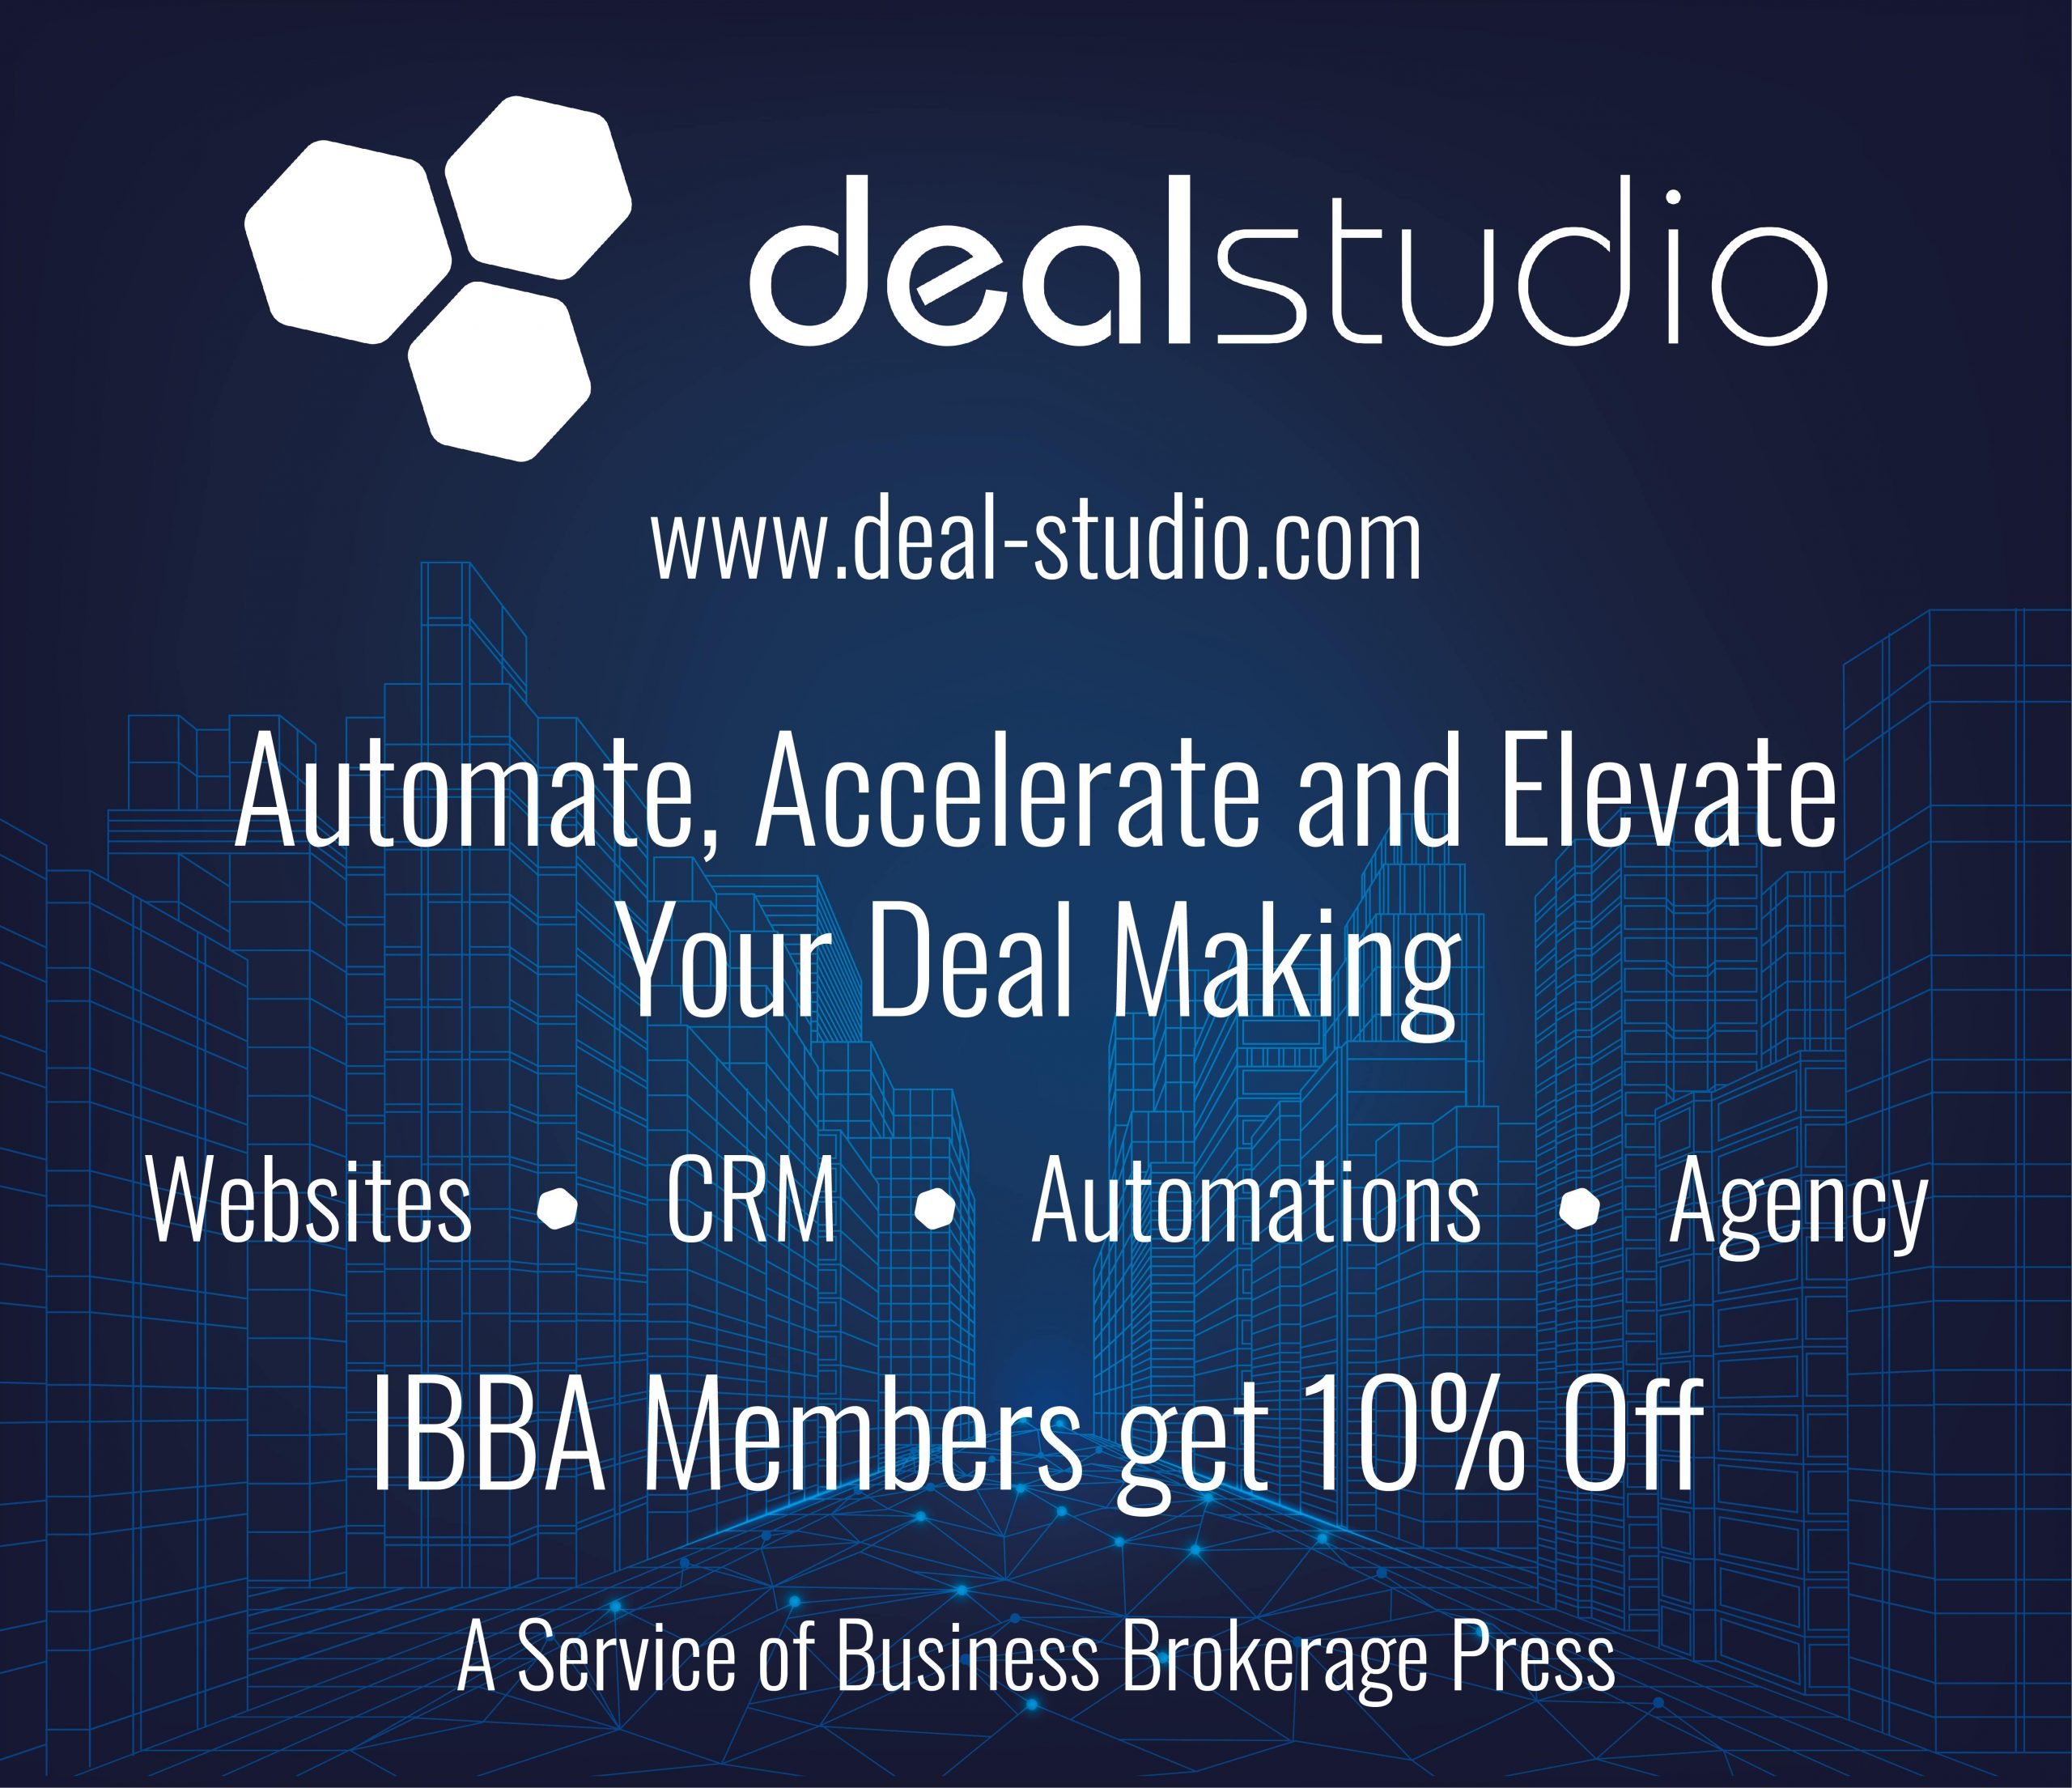 Automate, Accelerate and Elevate Your Deal Making